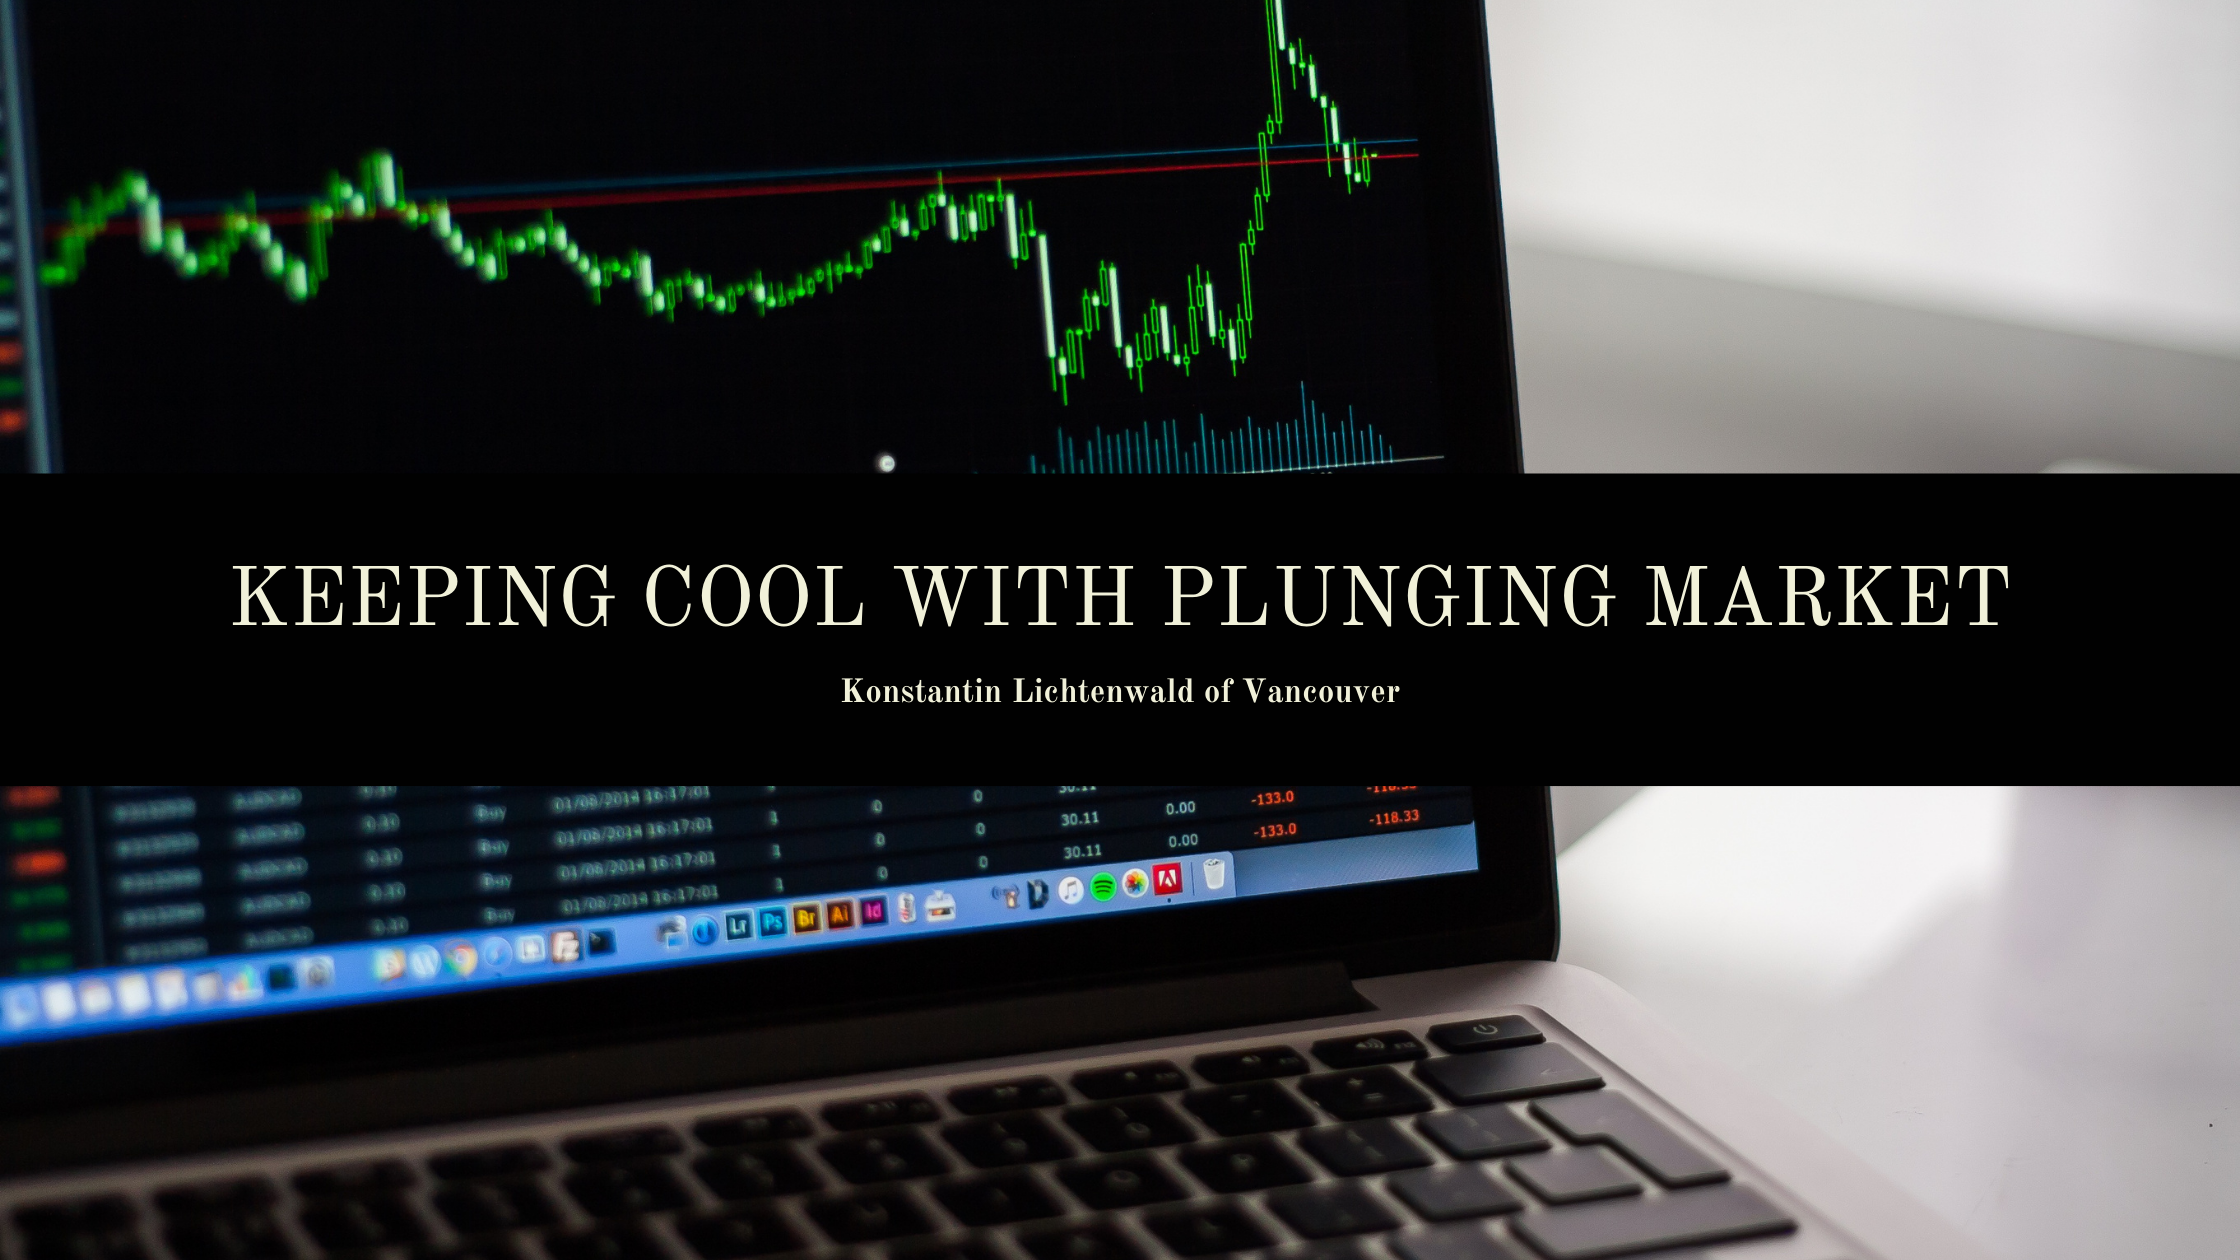 Konstantin Lichtenwald of Vancouver Discusses How to Keep Your Cool When the Market Is Plunging